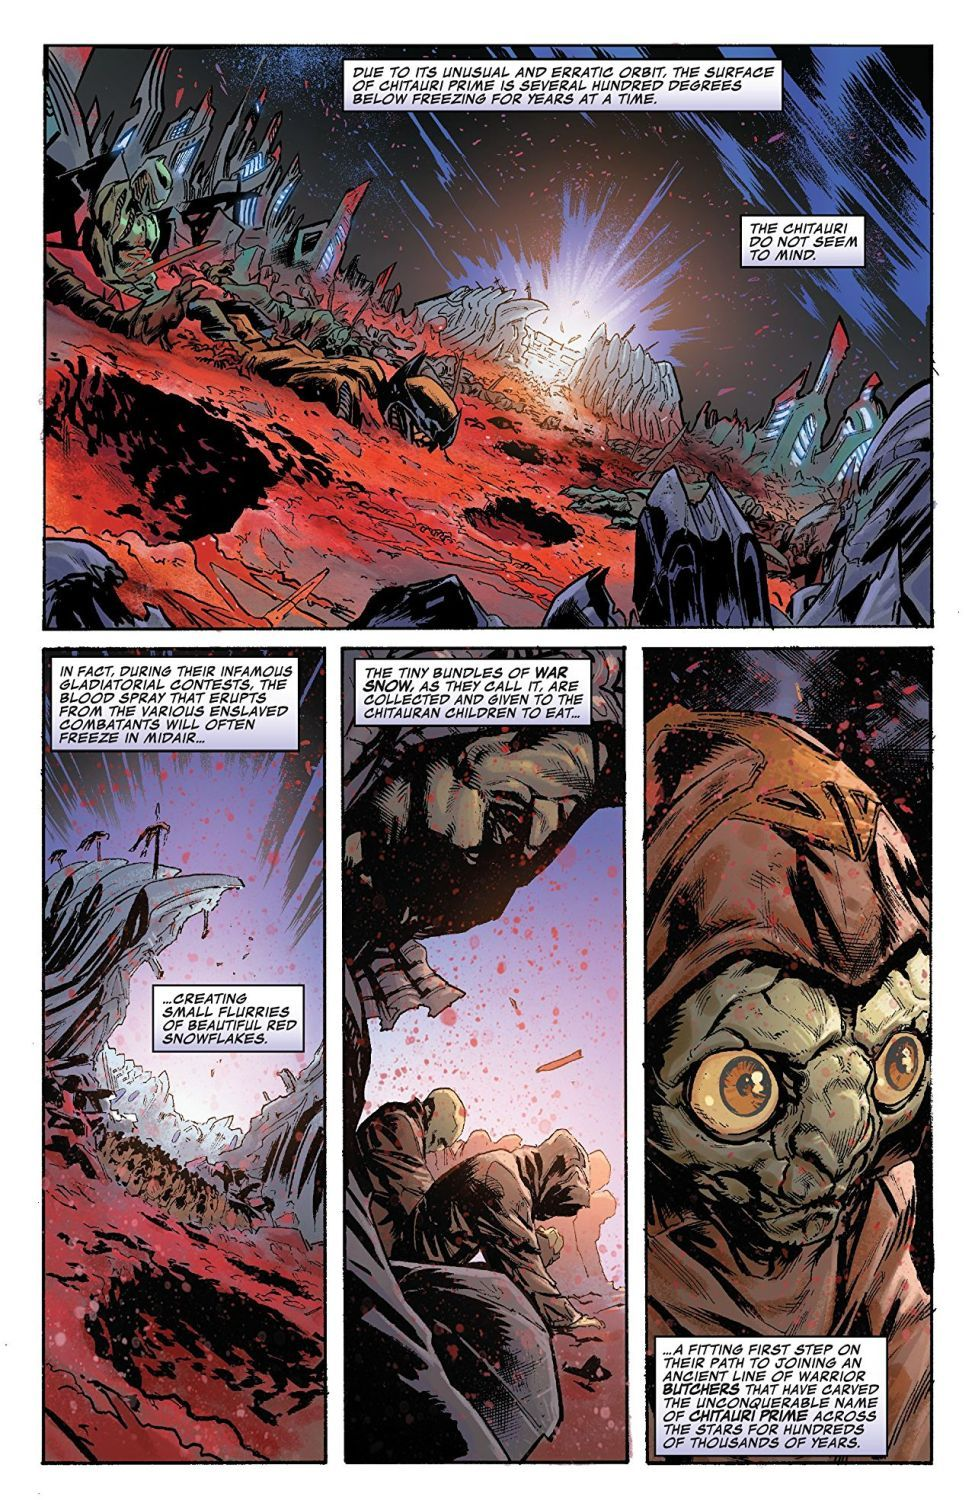 Thanos Wins by Donny Cates-2 - 3